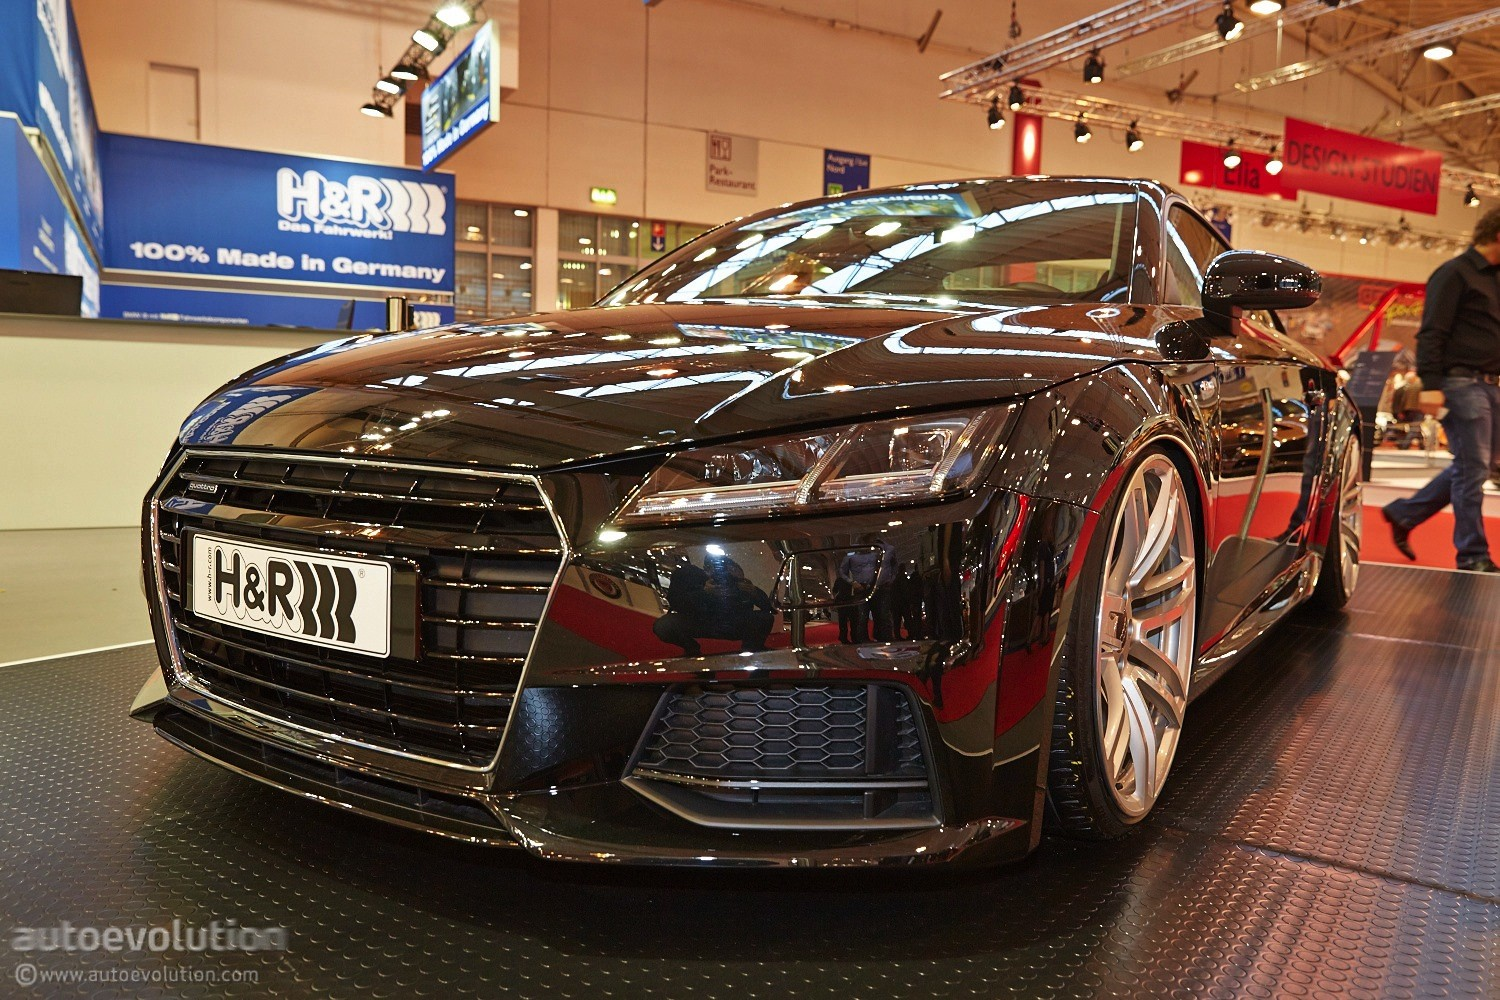 2015 audi tt debuts with performance lowering springs from h r in essen live photos. Black Bedroom Furniture Sets. Home Design Ideas